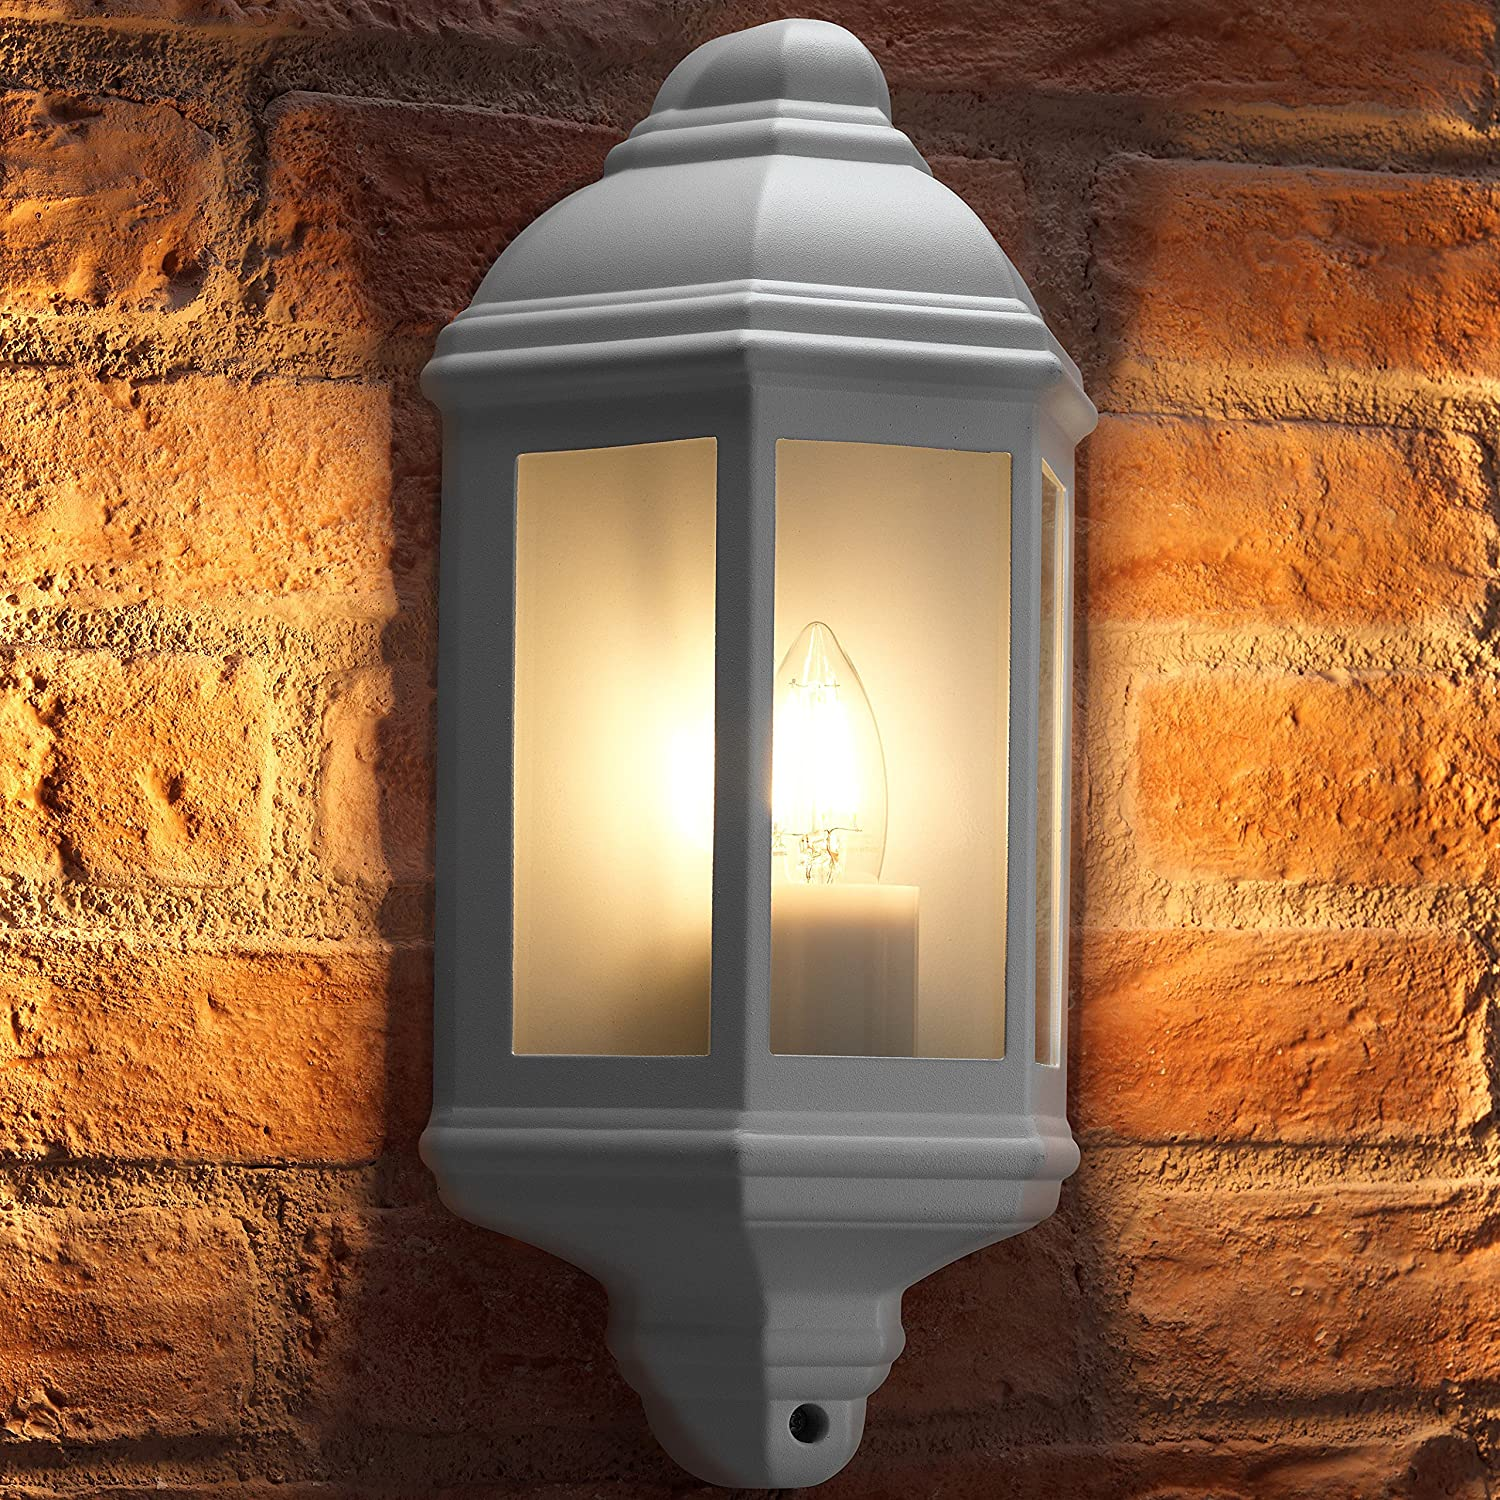 Auraglow Outdoor Wall Lantern Retro Vintage Garden Light - Black - Warm White LED Filament Light Bulb Included [Energy Class A+]